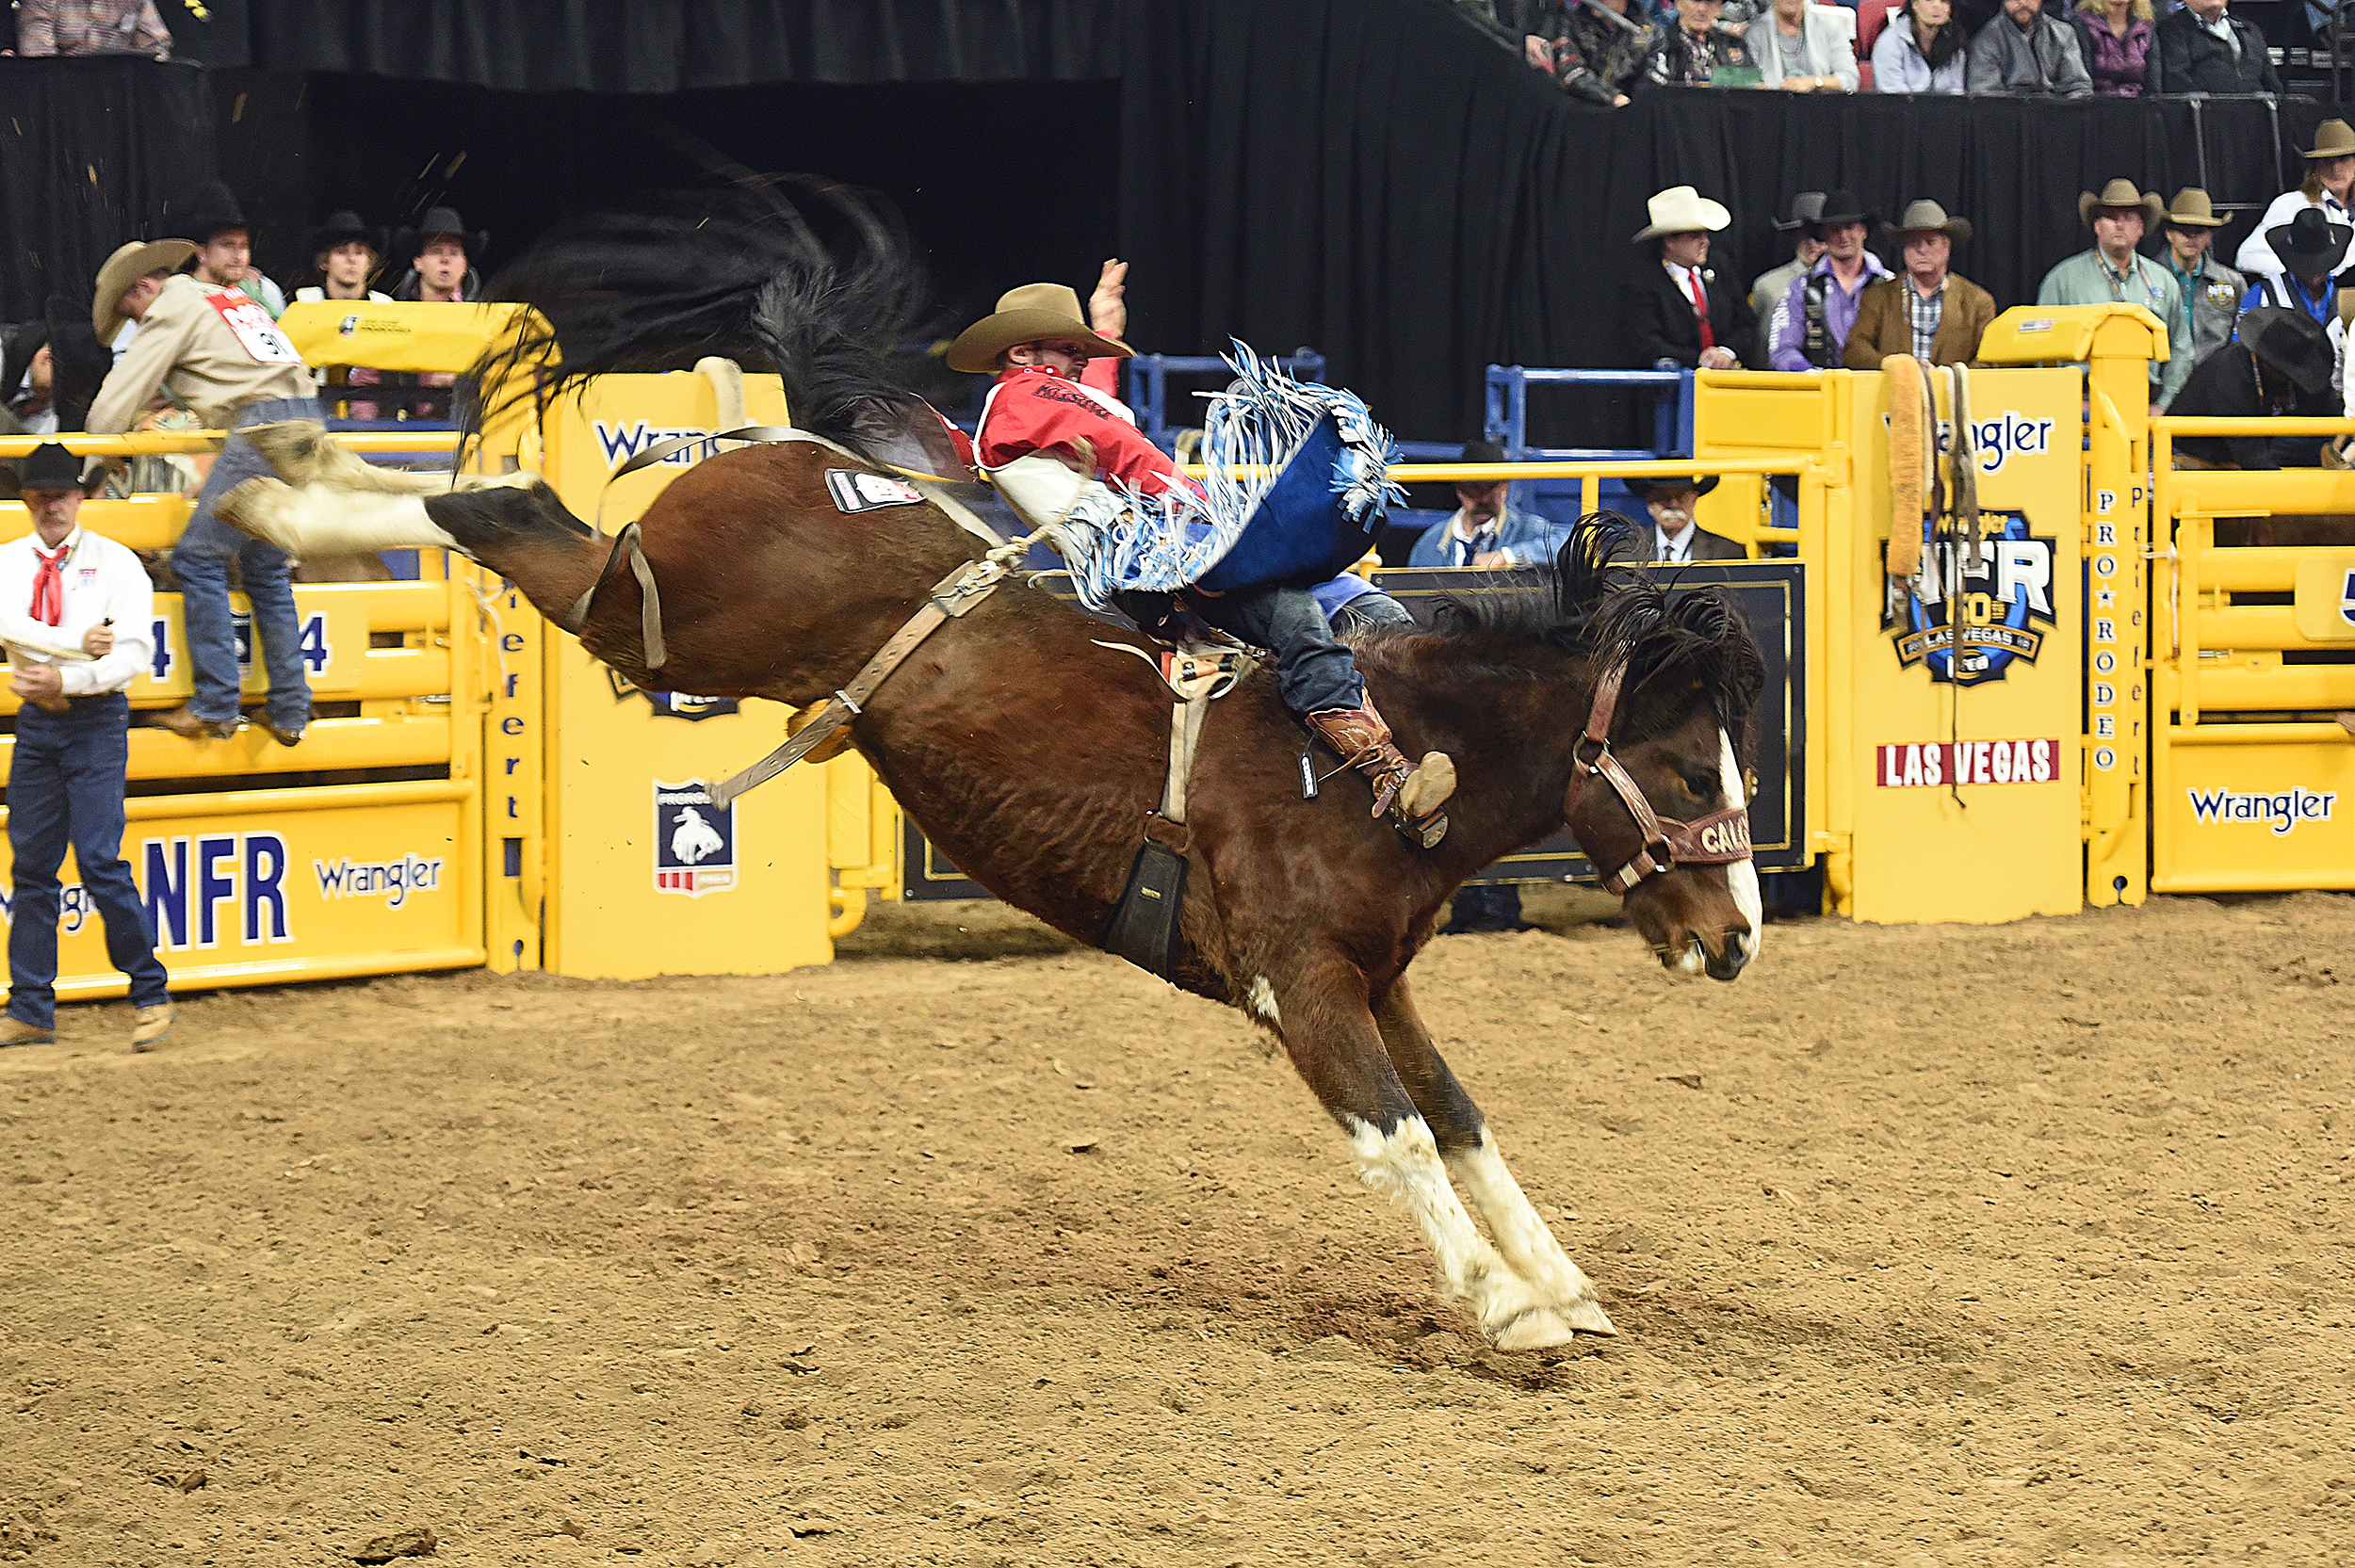 After just missing the National Finals Rodeo by finishing 16th in 2019, Mason Clements will return to the NFR for the third time in his career. (PHOTO BY ROBBY FREEMAN)